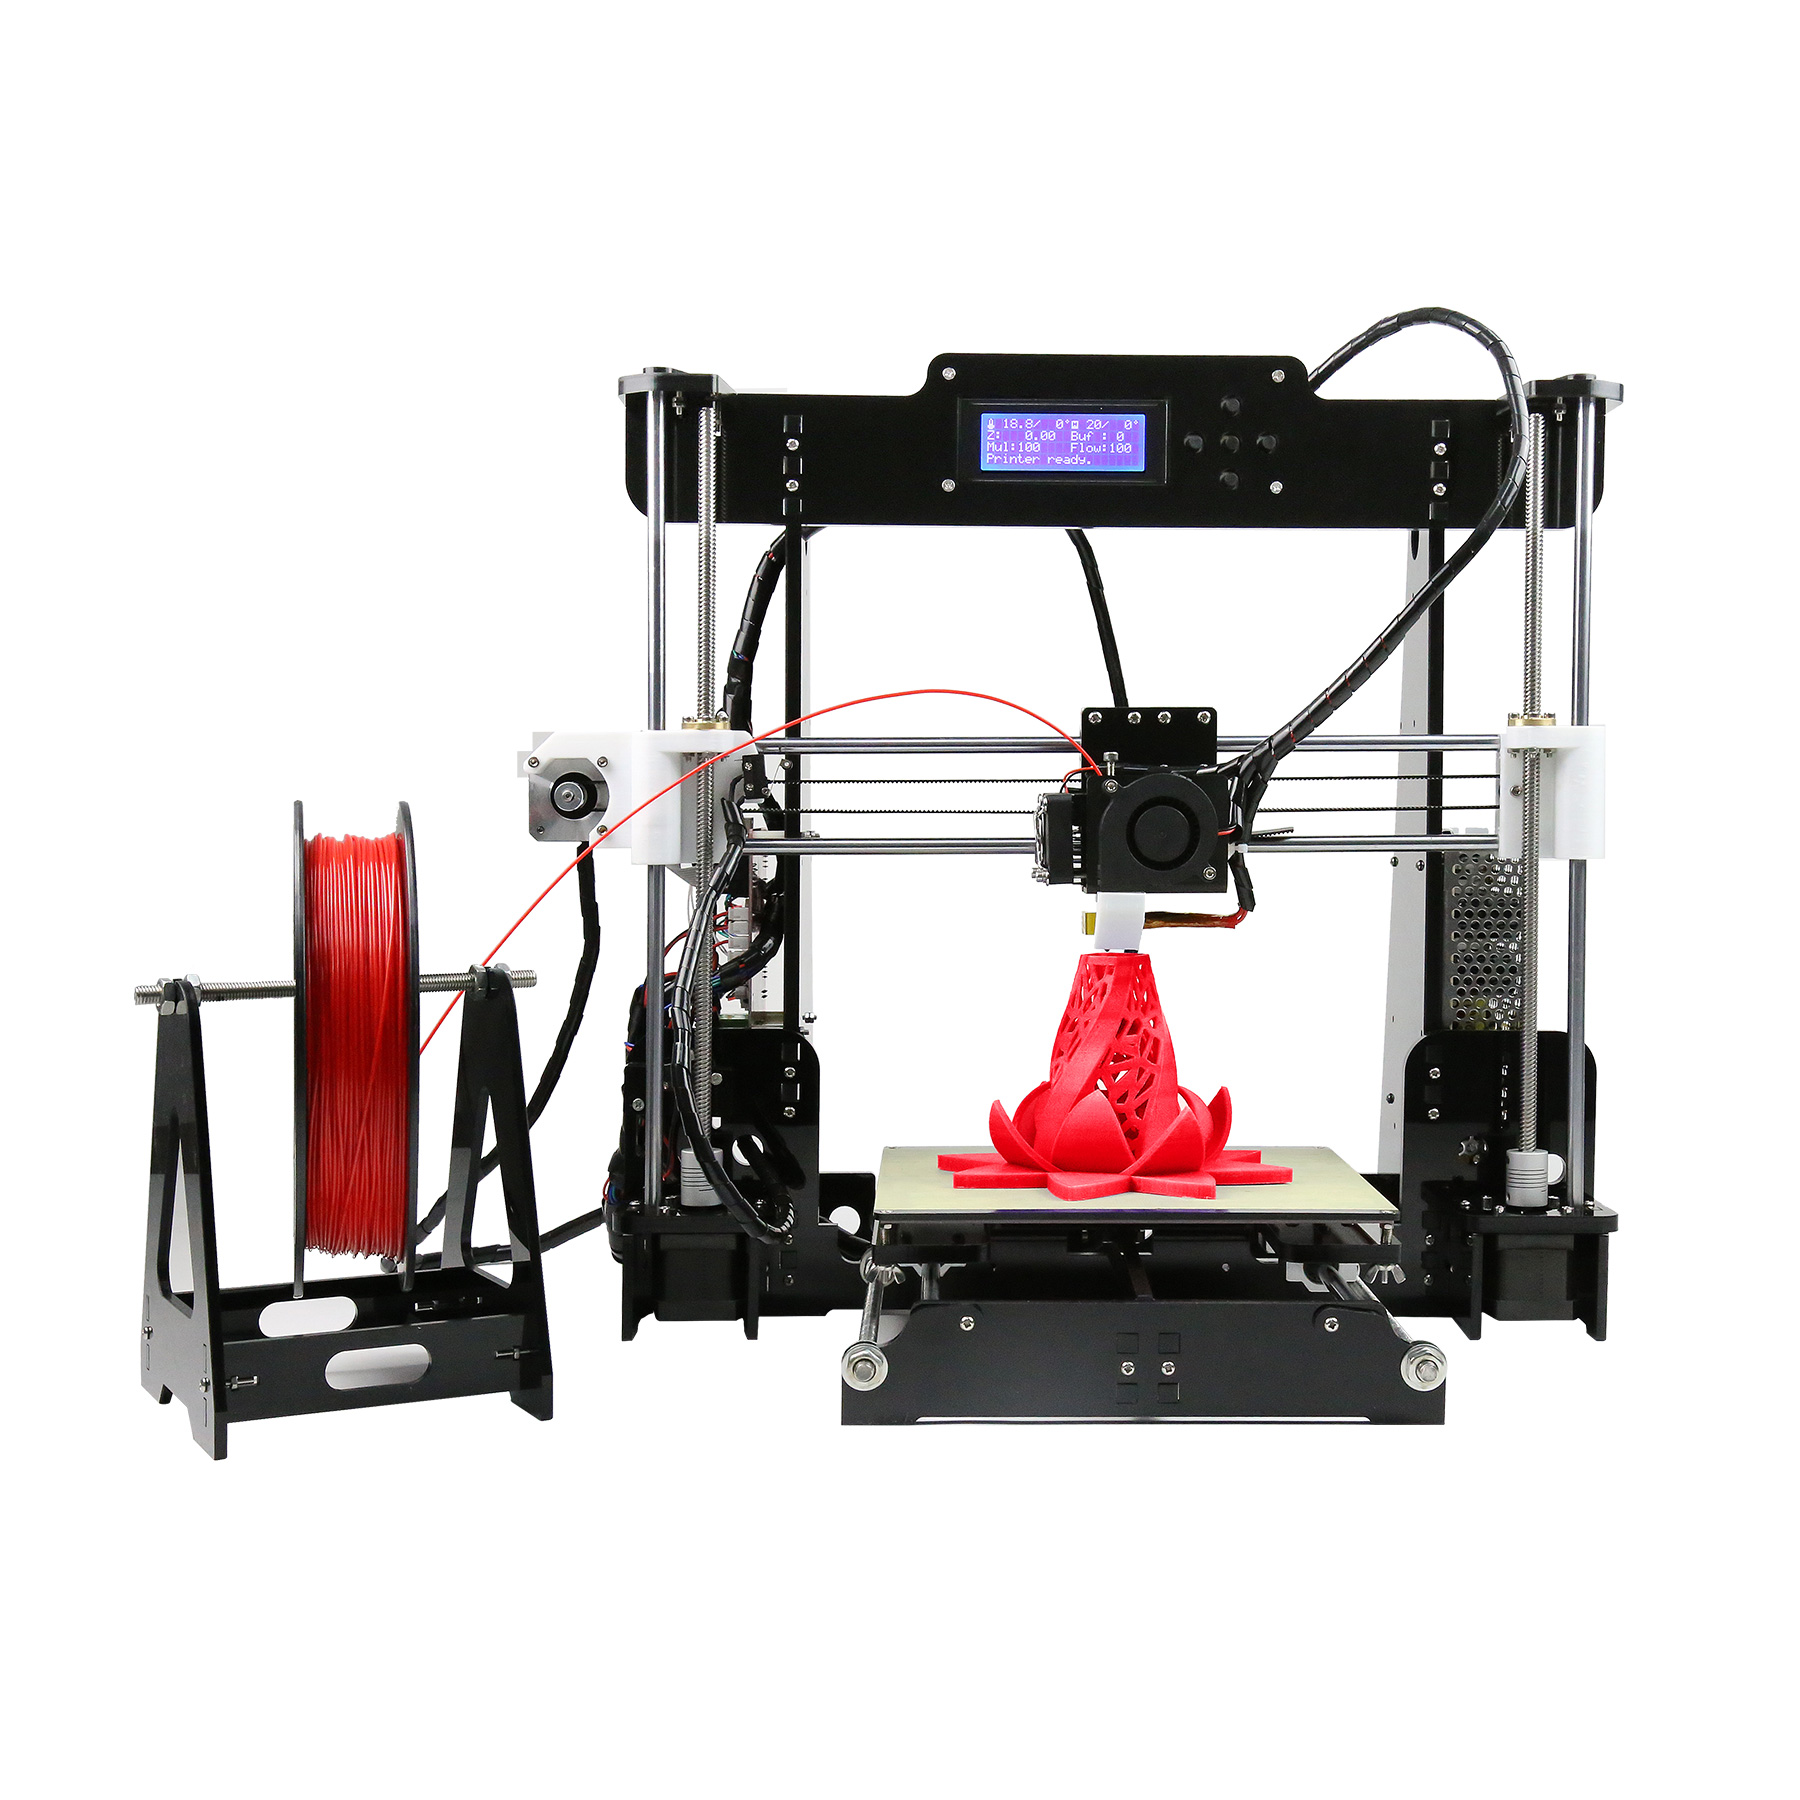 Click here to buy Orion Motor Tech Upgraded Desktop 3D PRINTER with All Metal MK8 Extruder Dual Air Vents by Orion Motor Tech.